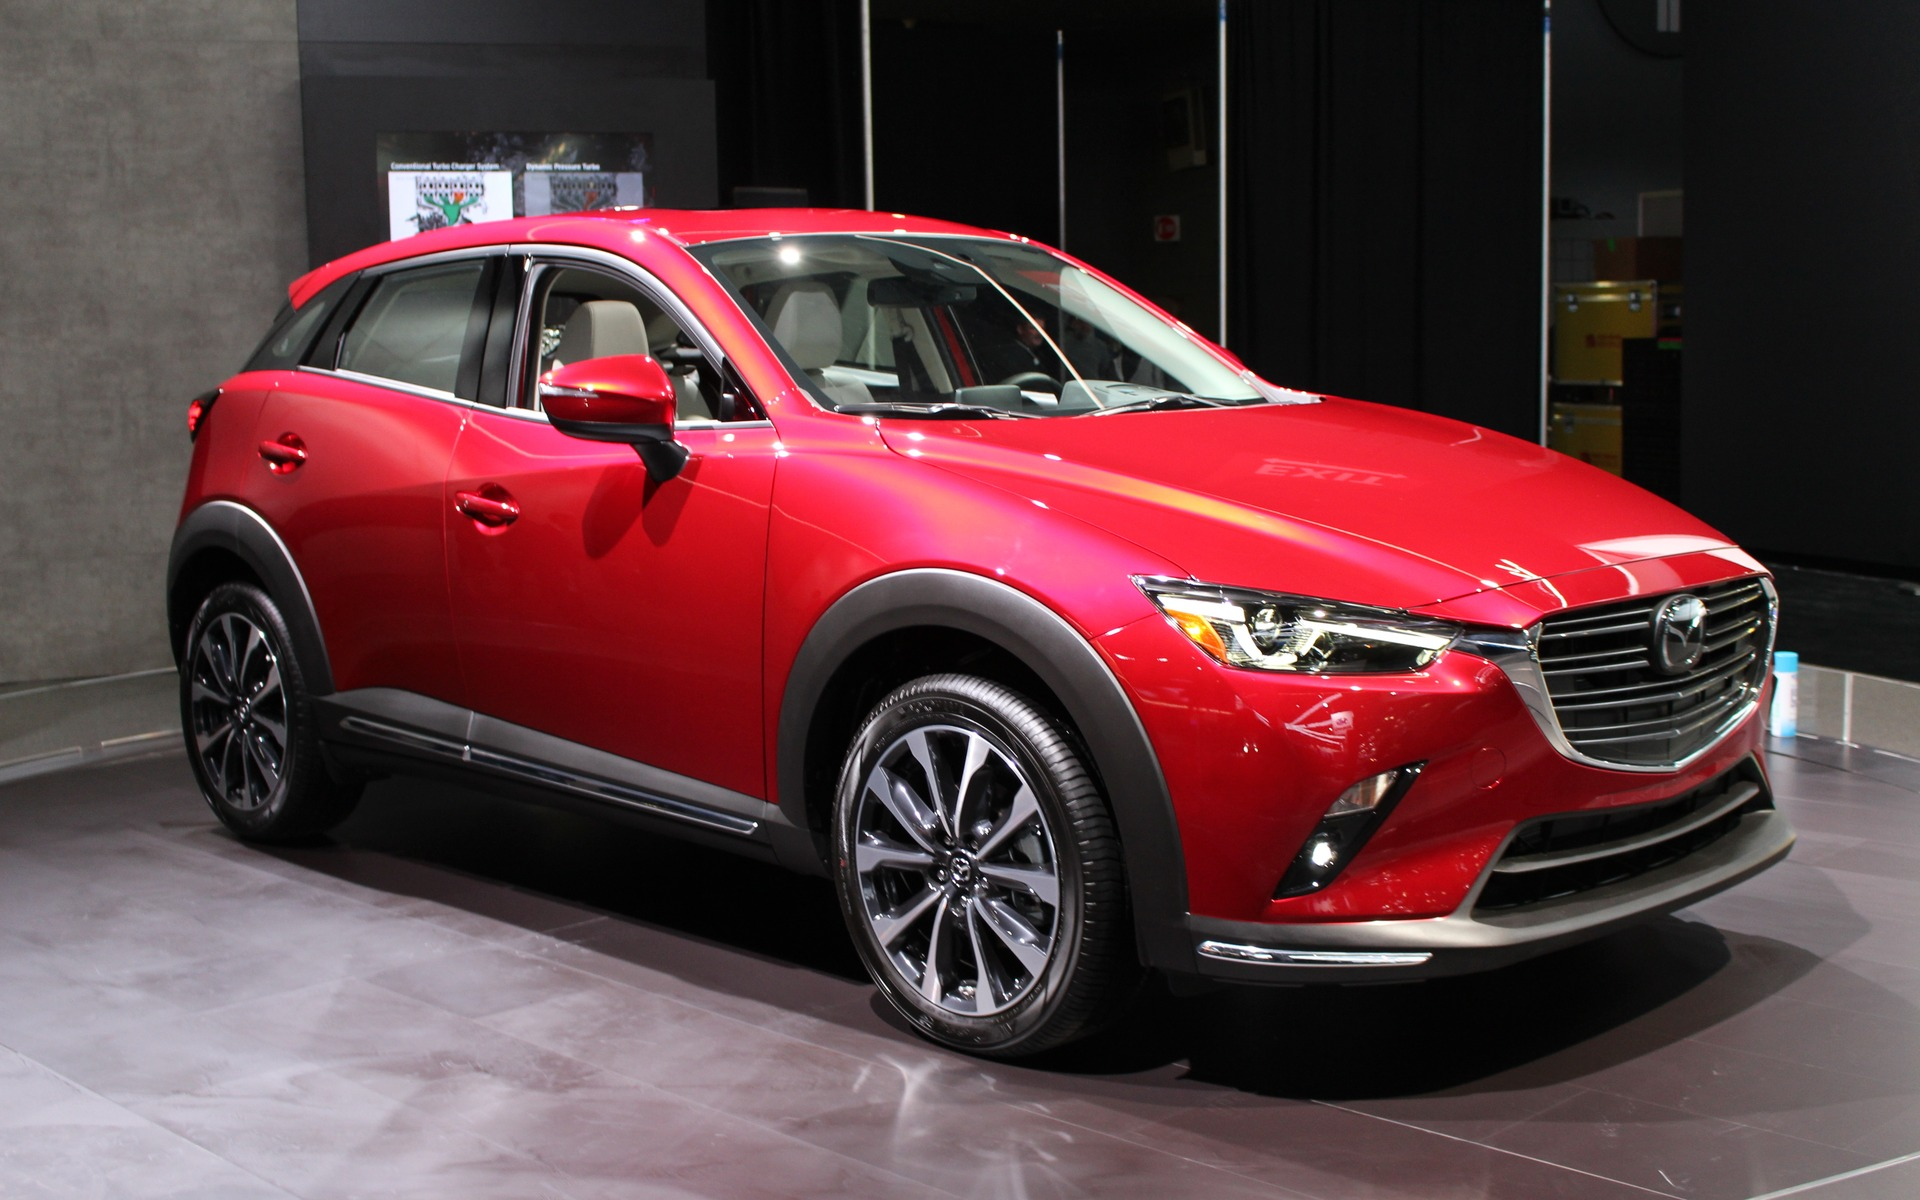 2019 Mazda Cx 3 On Display In New York The Car Guide